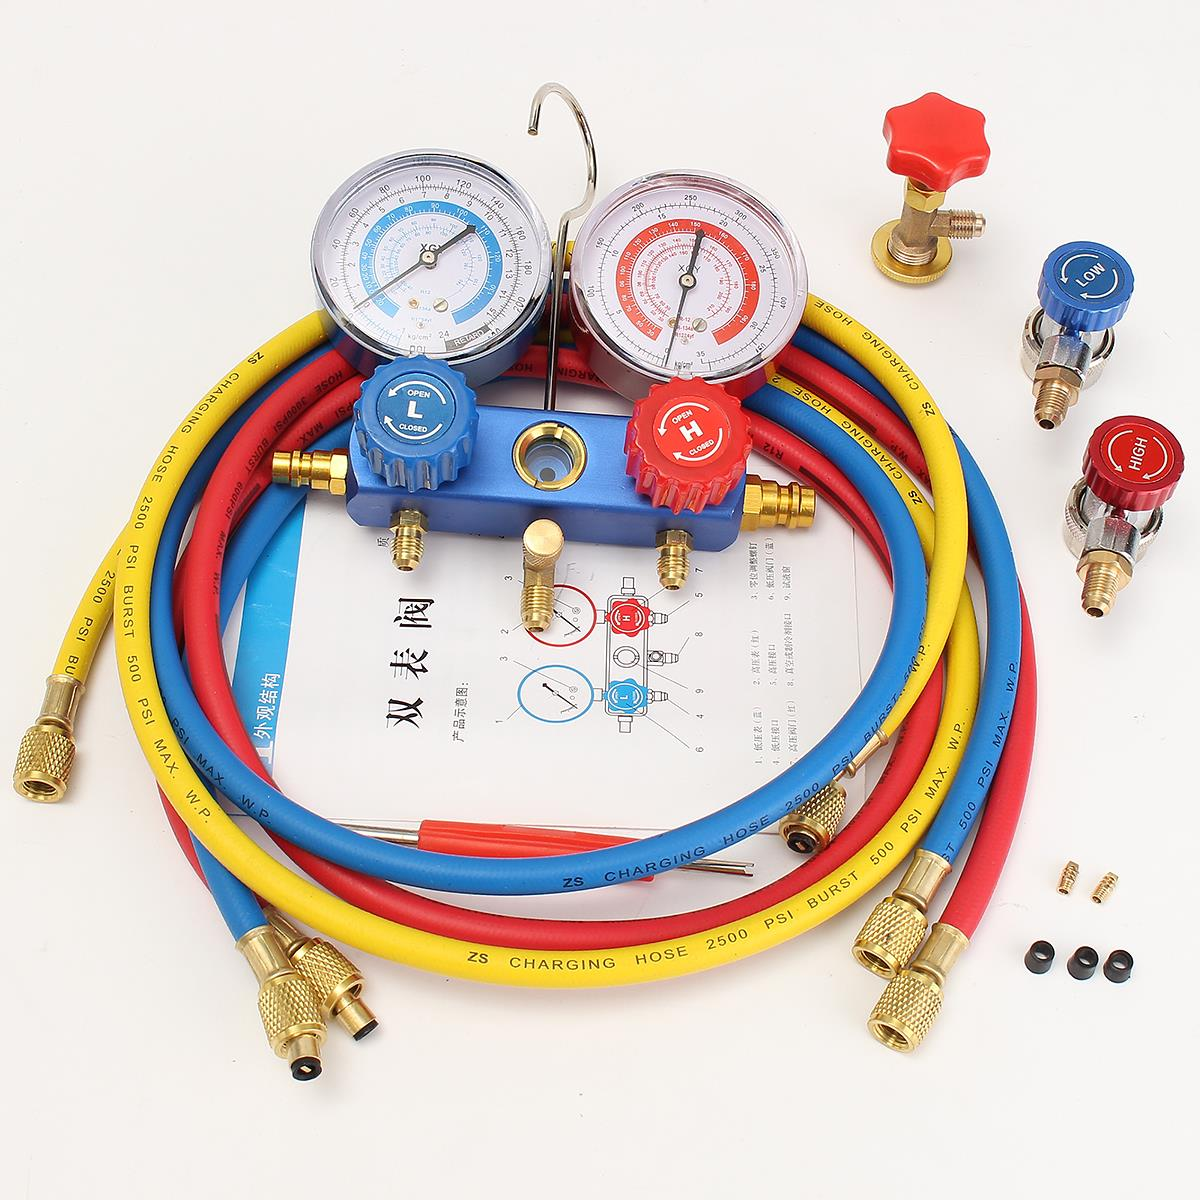 лучшая цена HVAC A/C Refrigeration Kit Manifold Gauge Set R22 R12 R134A Auto Refrigerant H/L Durable Quality